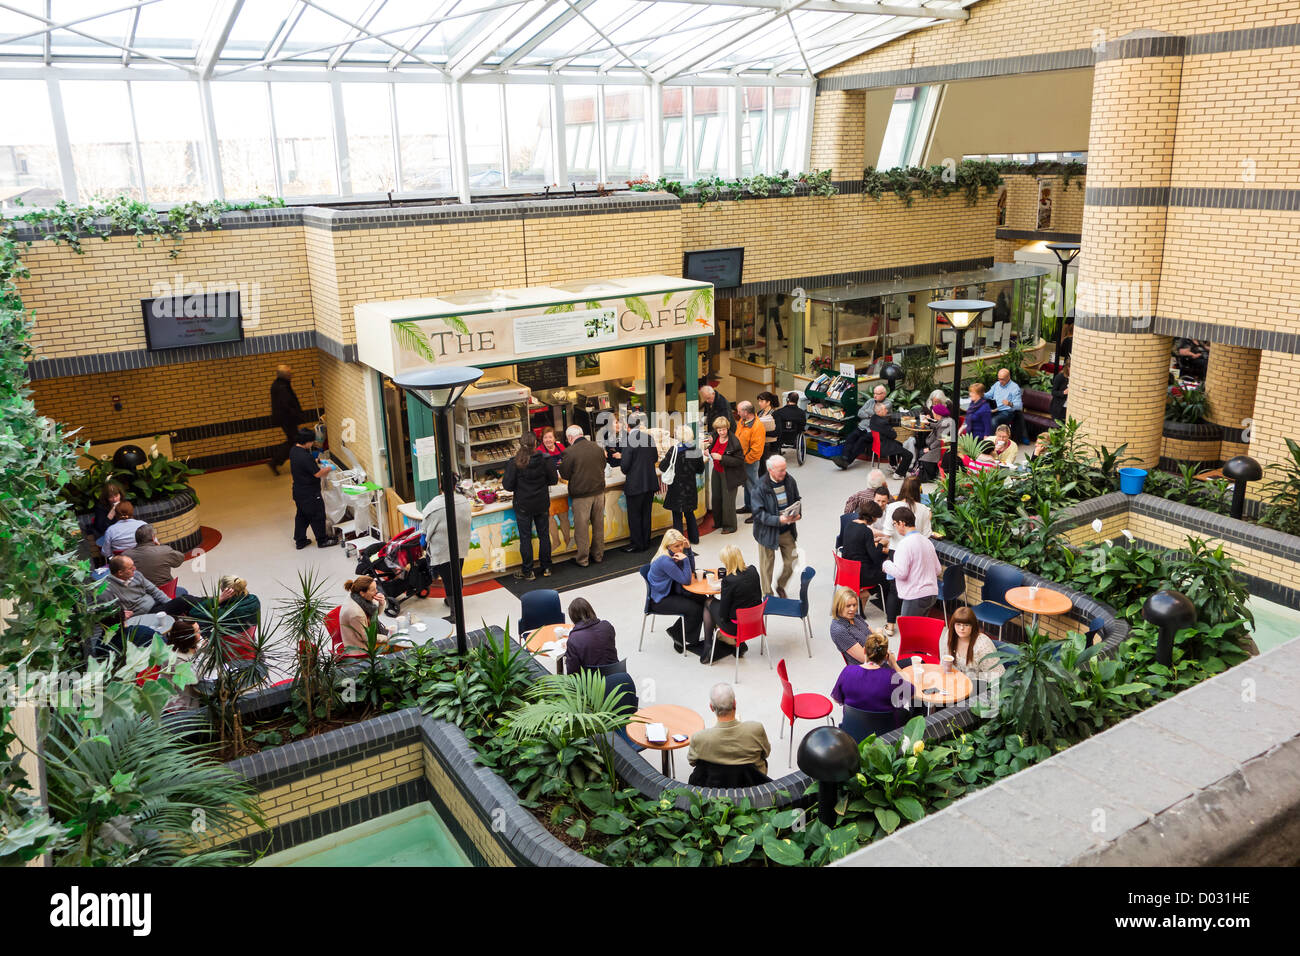 Die Café-Bereich des Atriums in Tallaght Hospital, Tallaght Dublin, Irland Stockbild